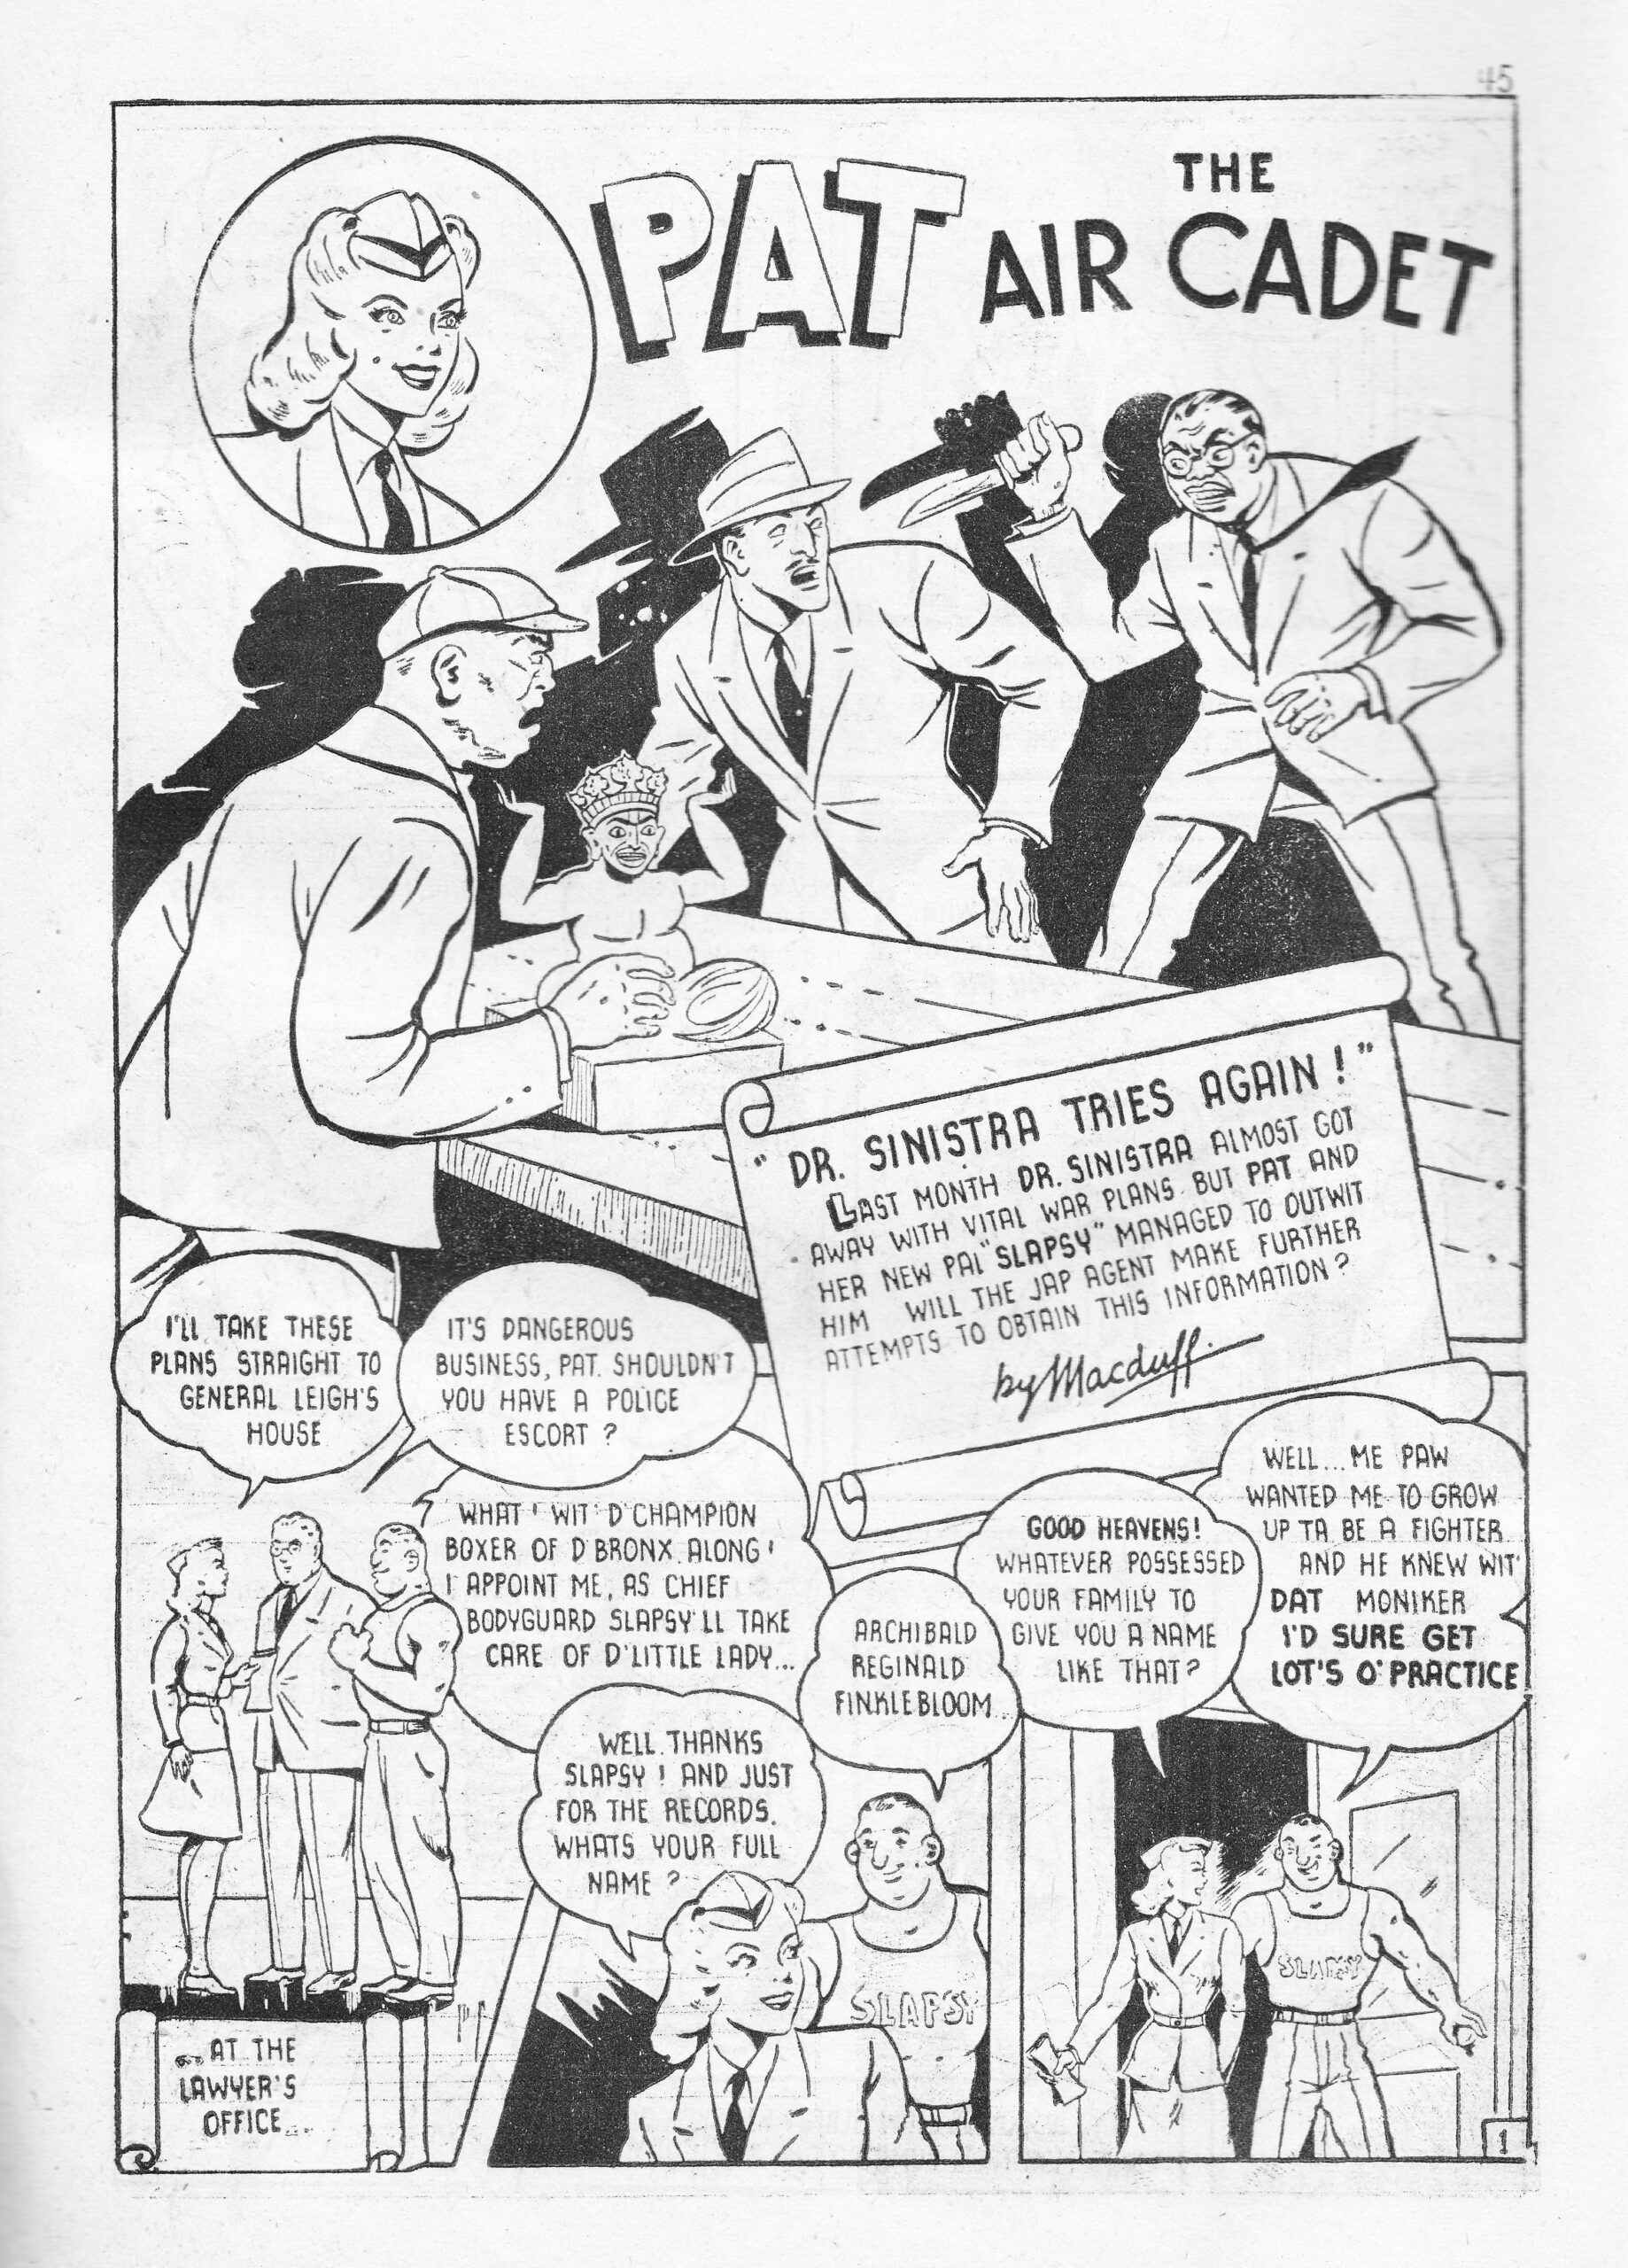 C:\Users\Robert\Documents\CANADIAN CARTOONING ILLUSTRATION and ANIMATION\IMAGE CARTOON P\PAT THE AIR CADET, Grand Slam, 3-11, Oct. 1944.jpg